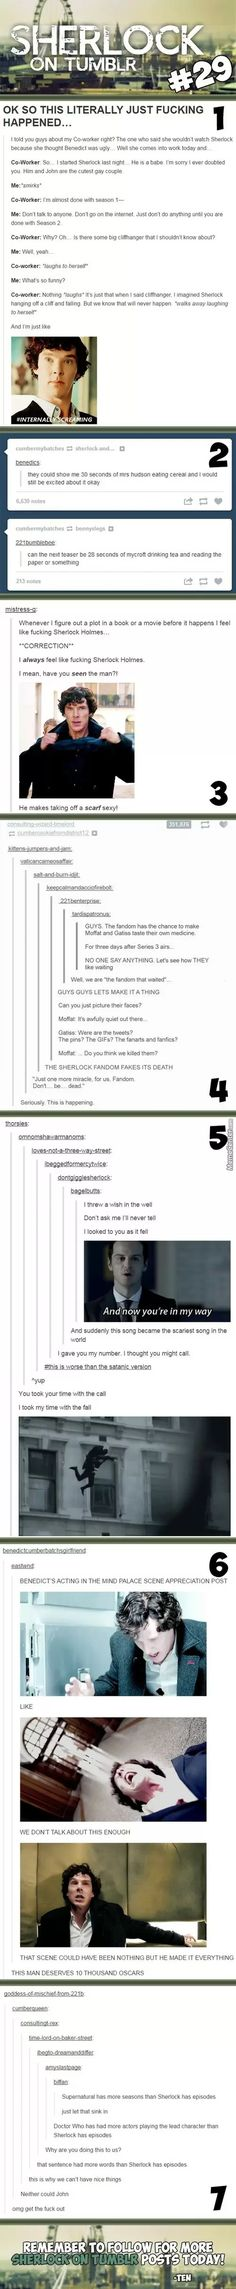 The Sherlock fandom fakes its death xD